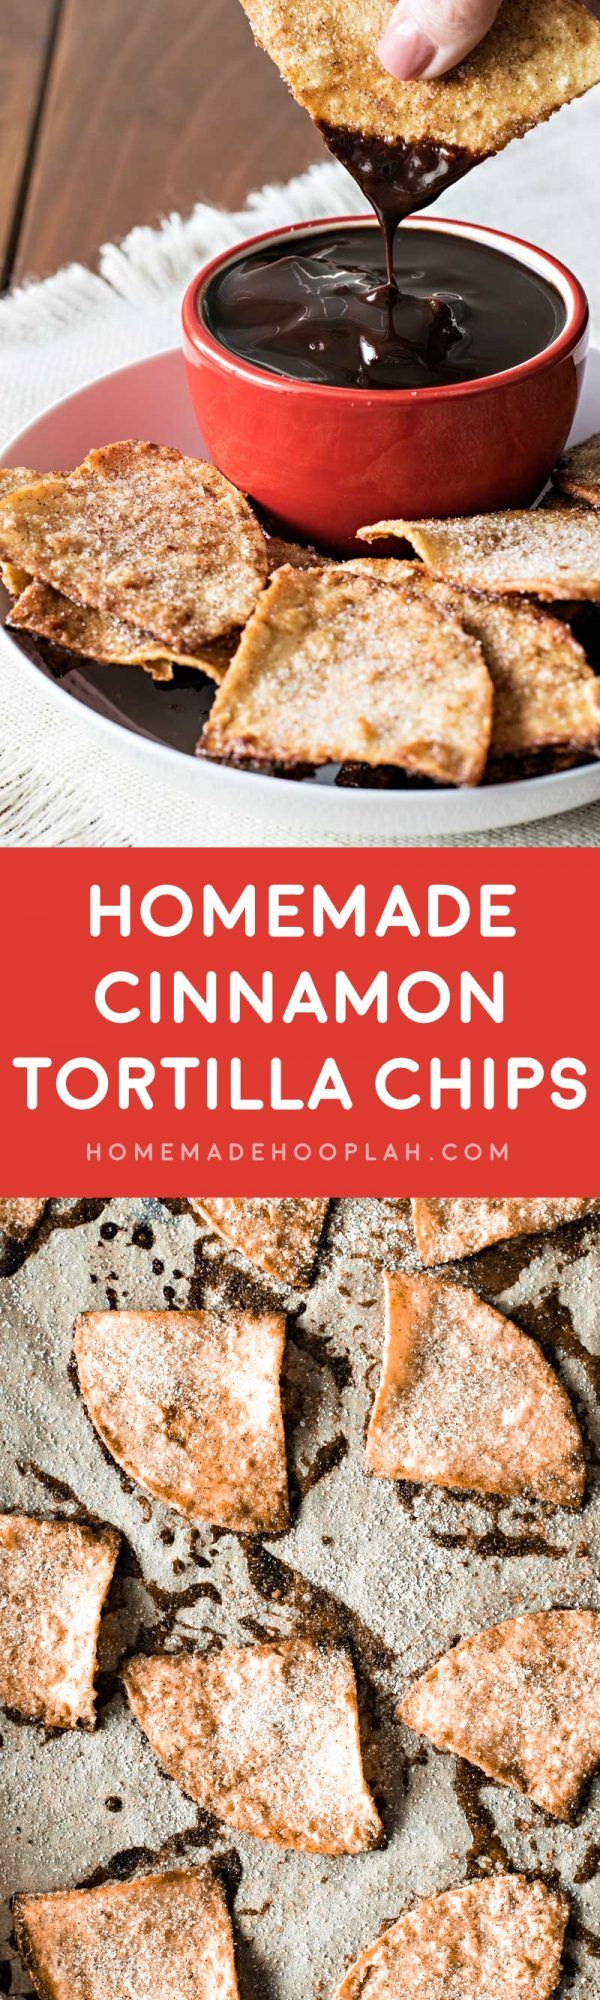 Tortilla Chips! These baked cinnamon tortilla chips are easy to make ...